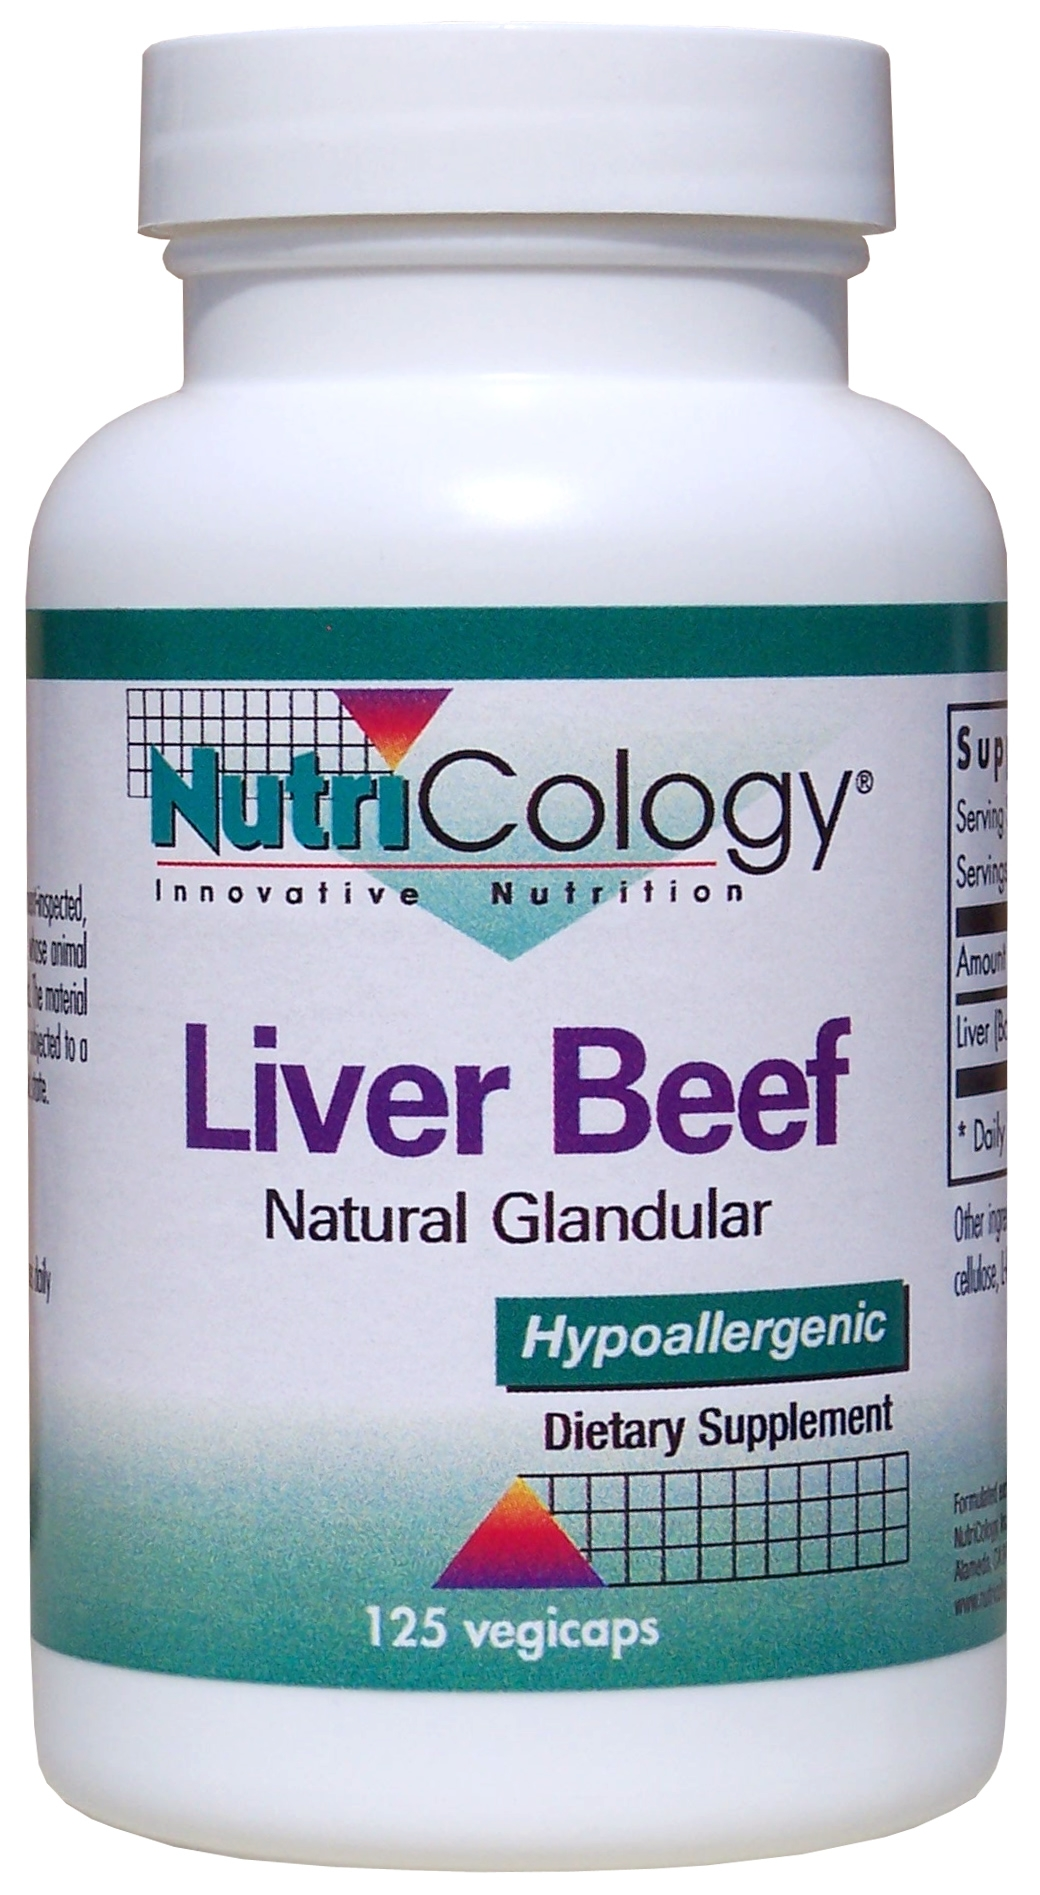 Liver Beef Natural Glandular 125 Vegicaps by Nutricology